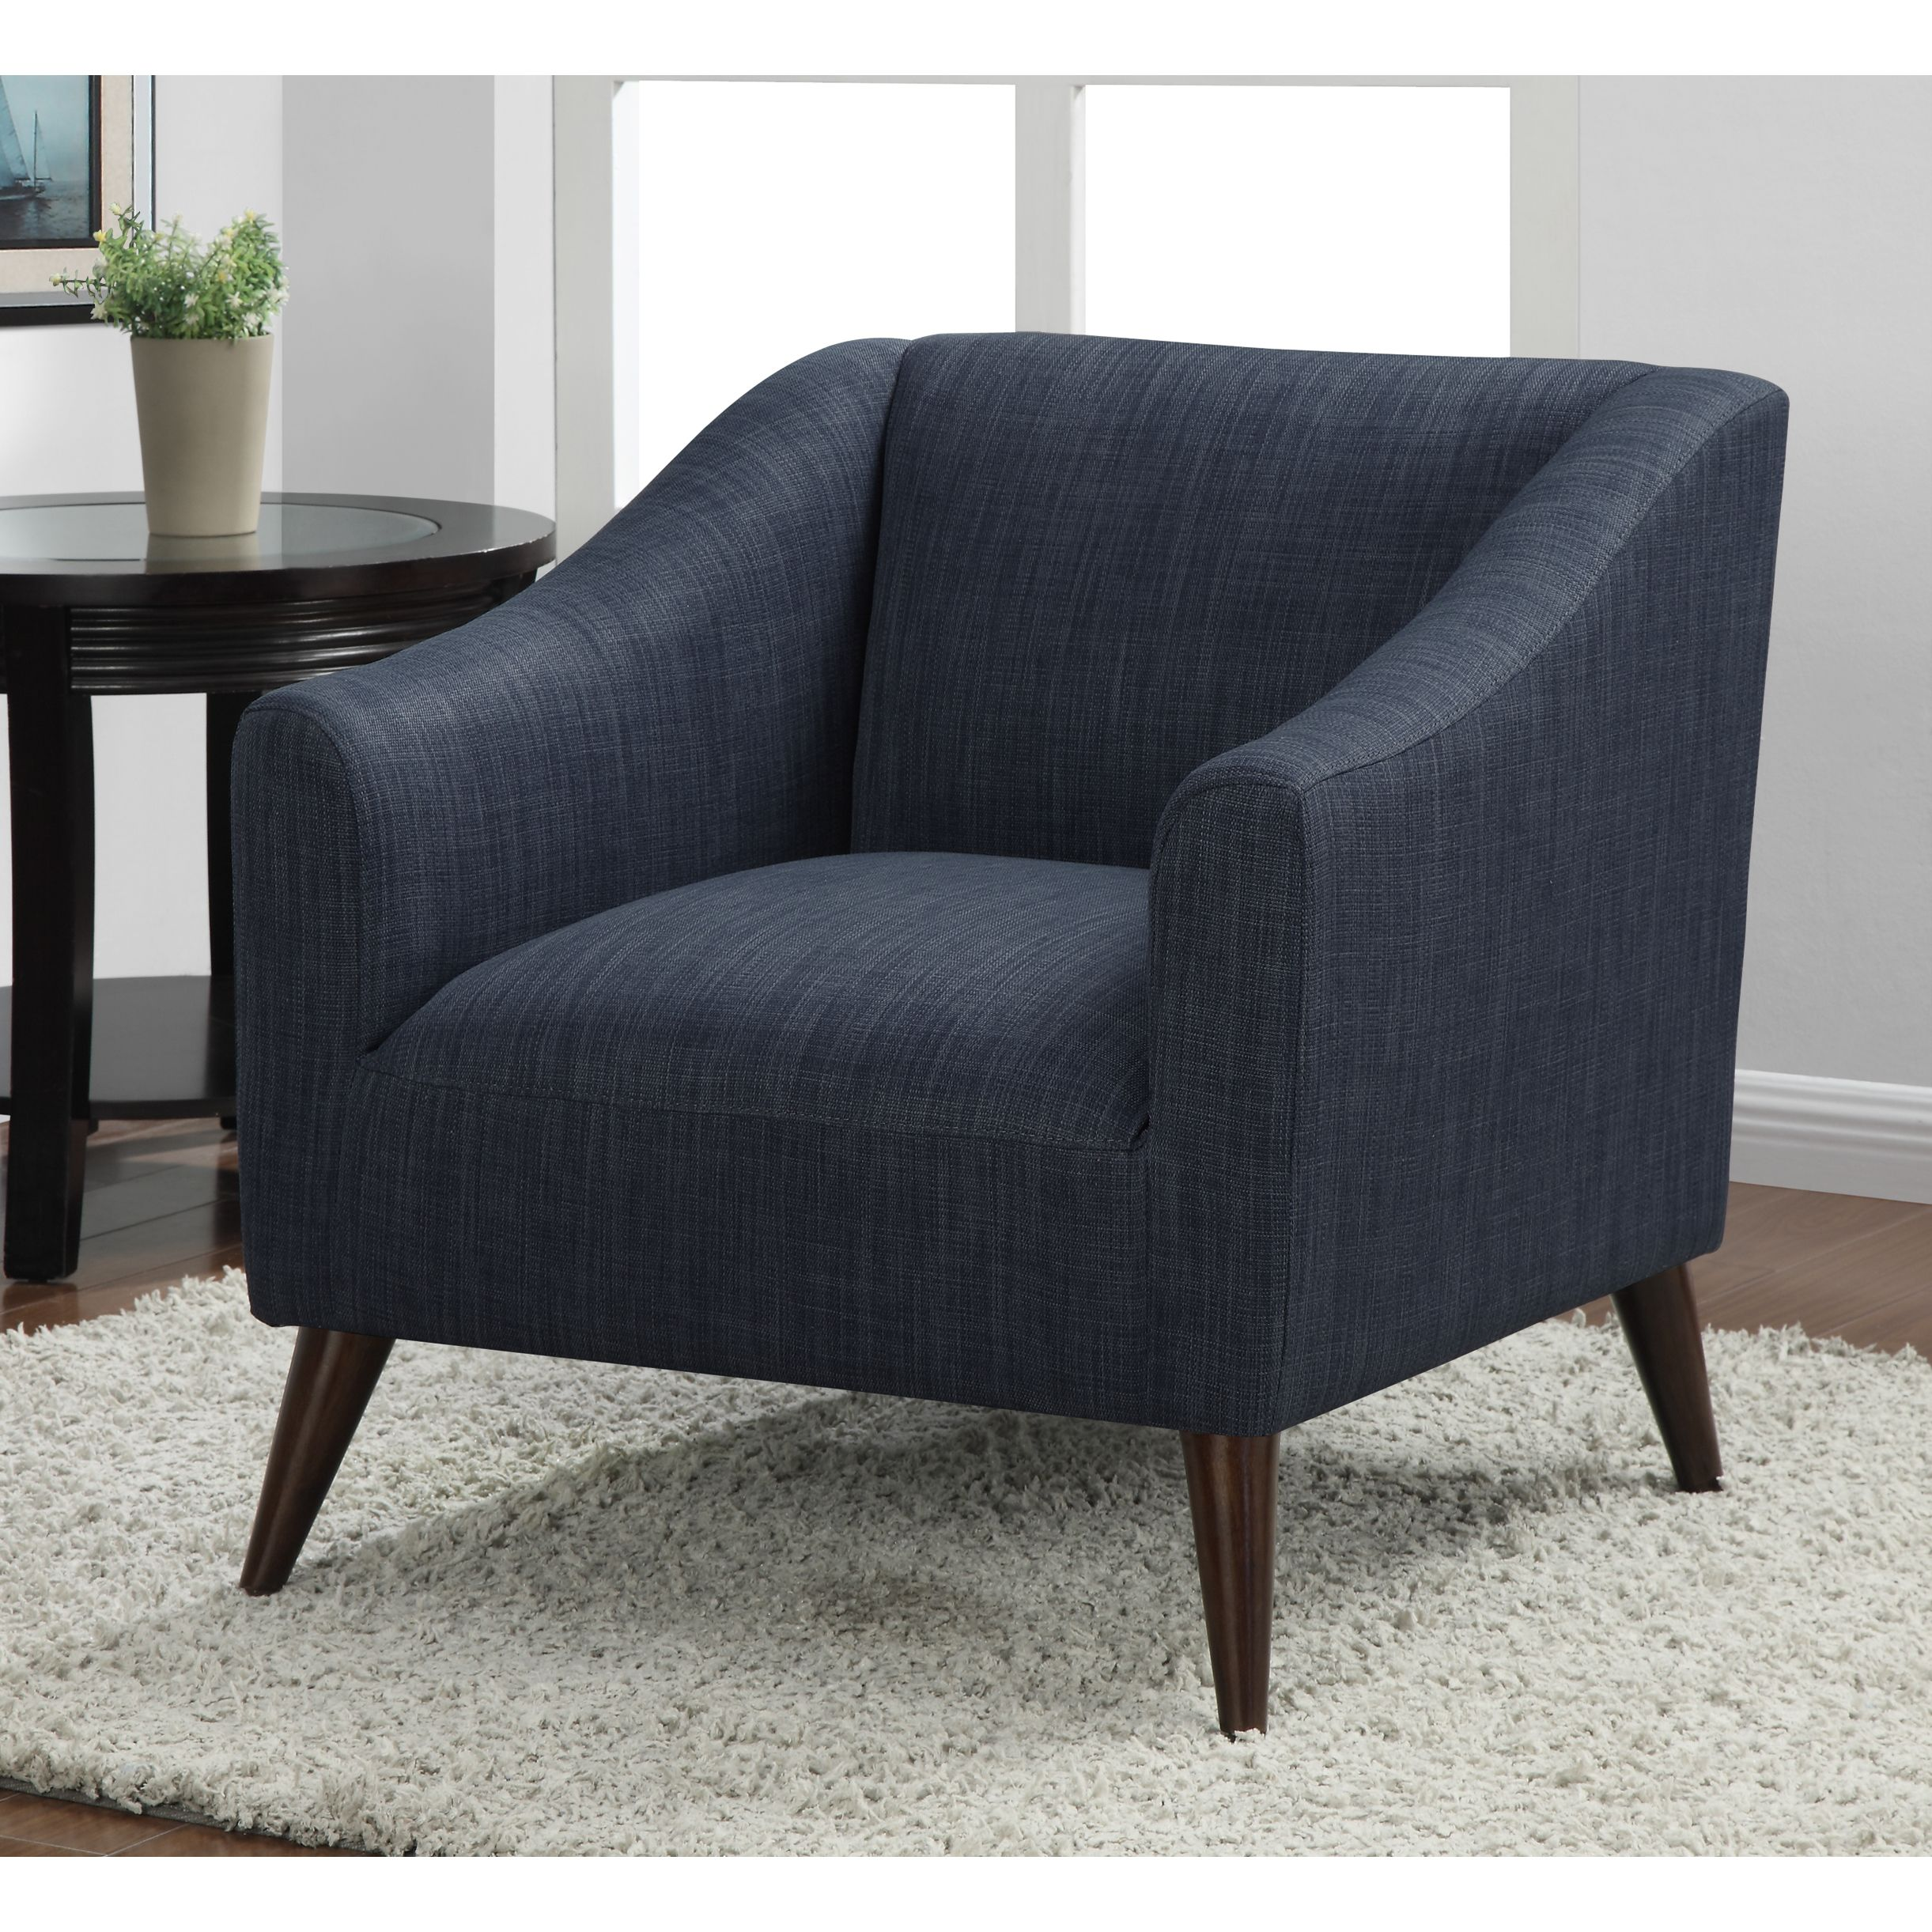 Quincy Blue Linen Upholstered Arm Chair Fabric  Linen Fabric Stunning Wooden Living Room Chairs Decorating Inspiration